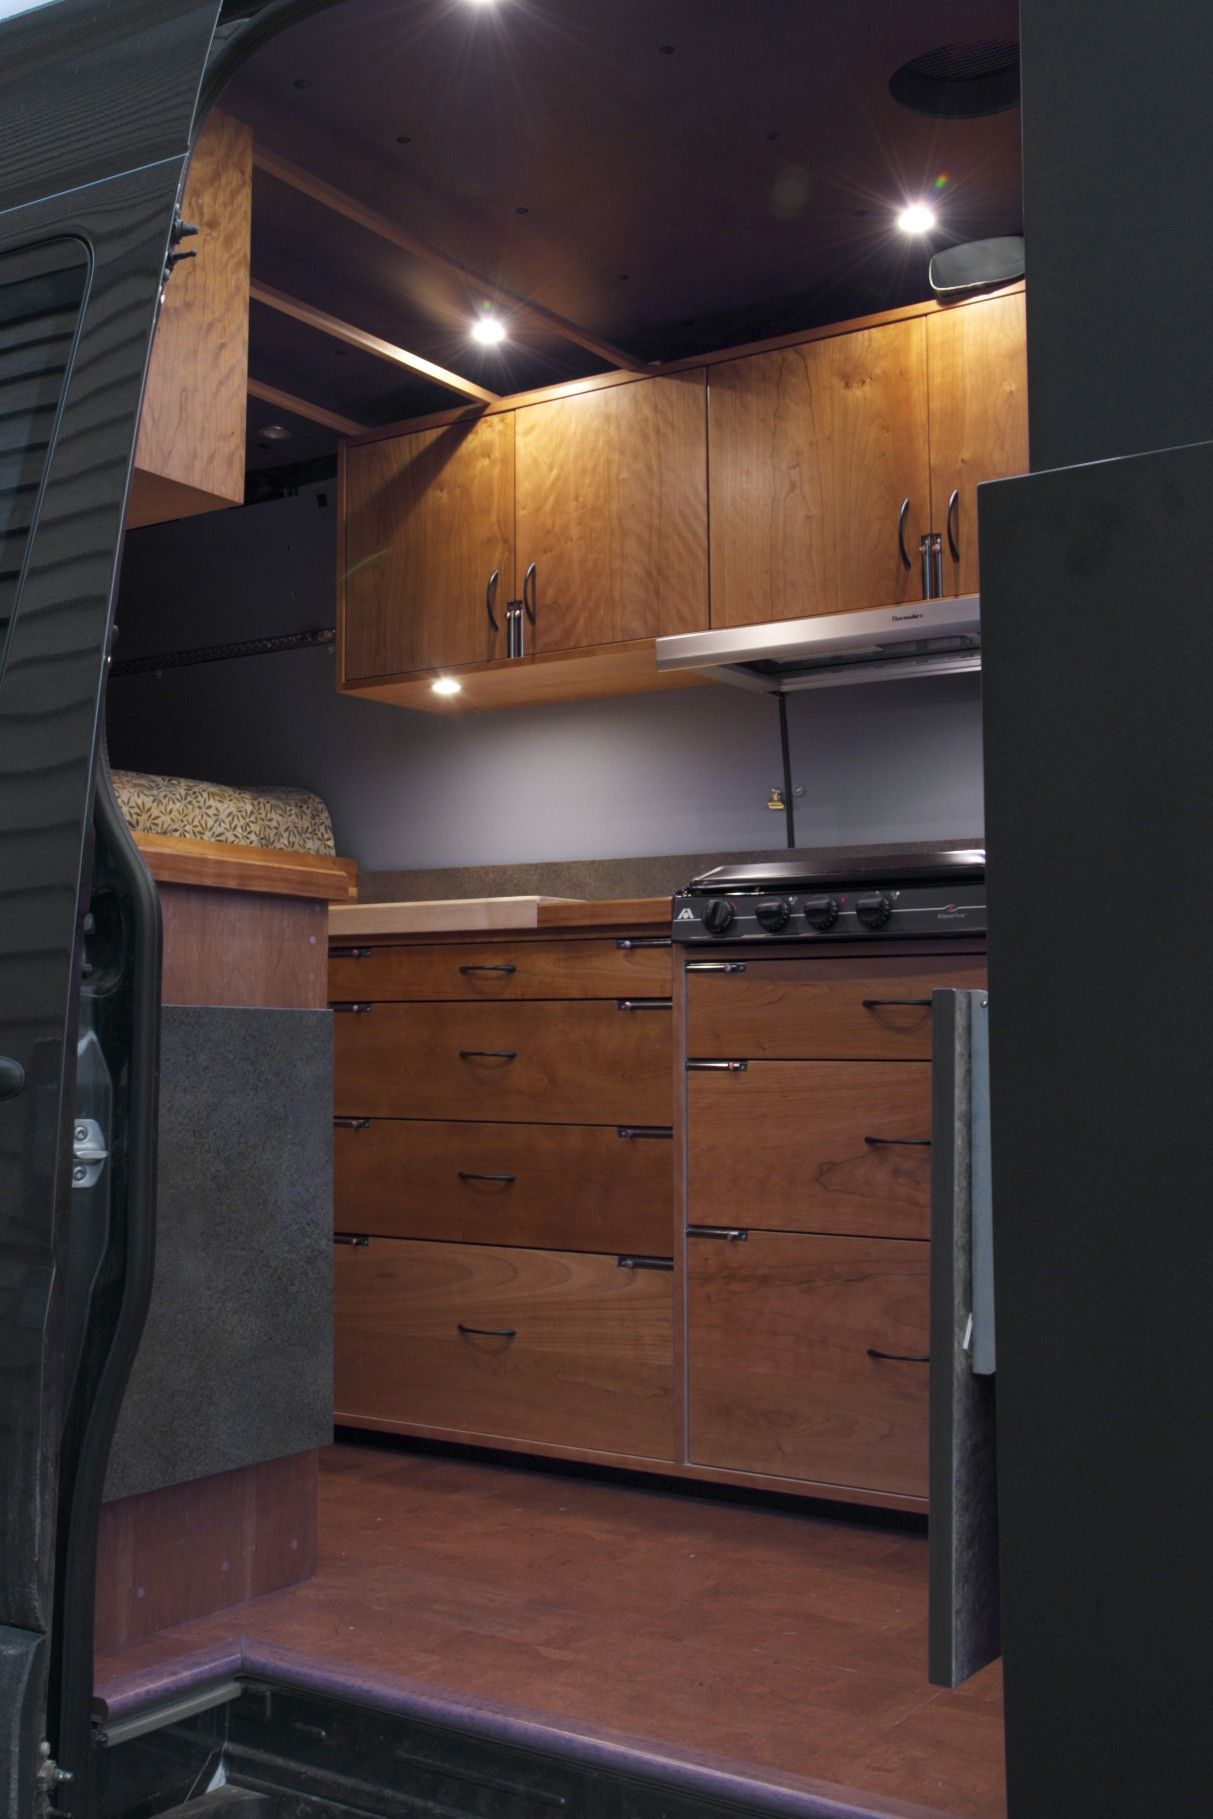 d2ec91a092 Sprinter RV conversion by Allen Sutter